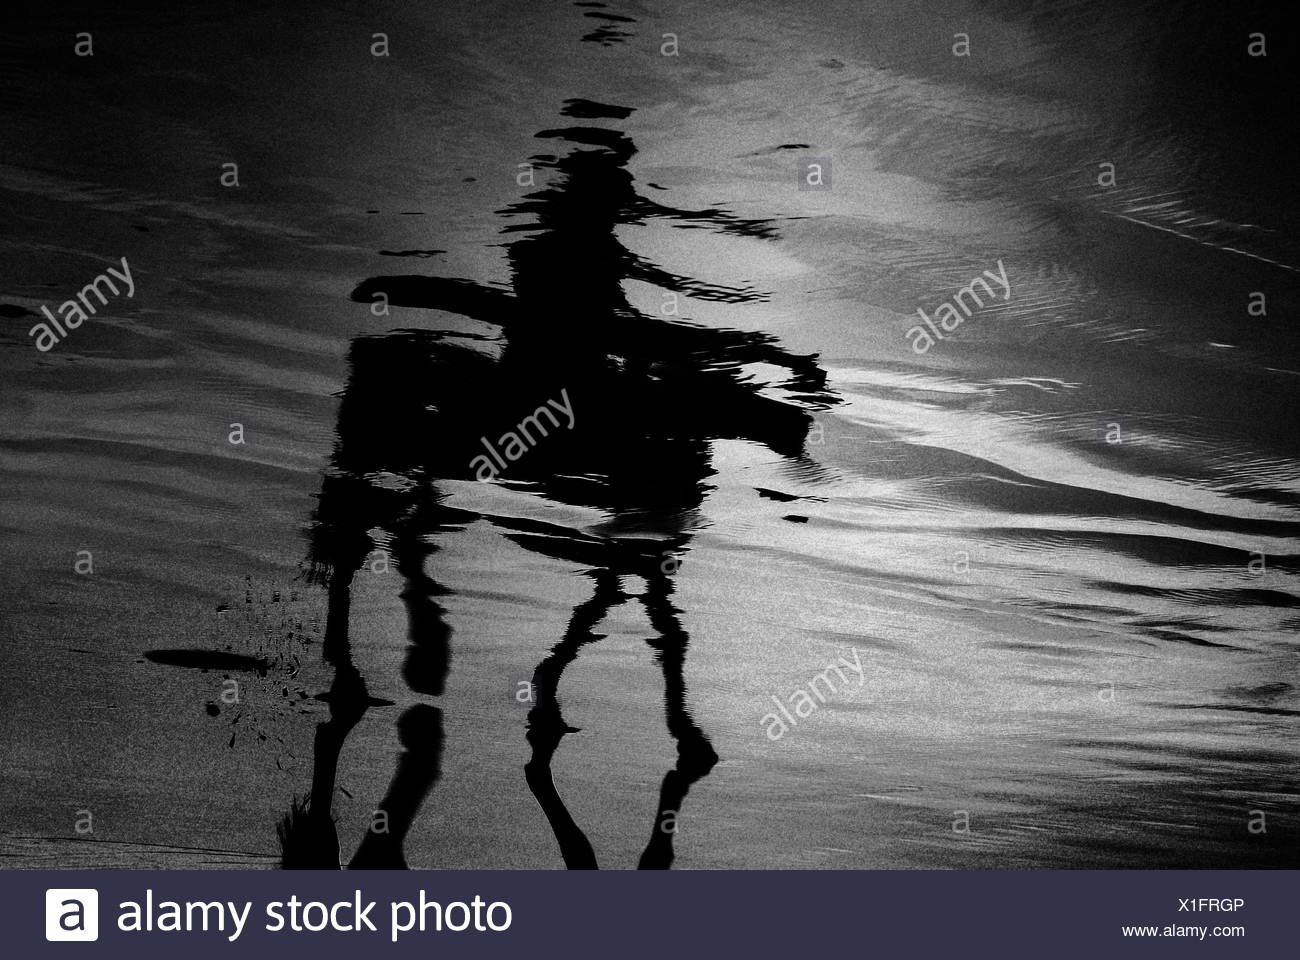 Reflection Of Person On Horse Riding On Beach - Stock Image